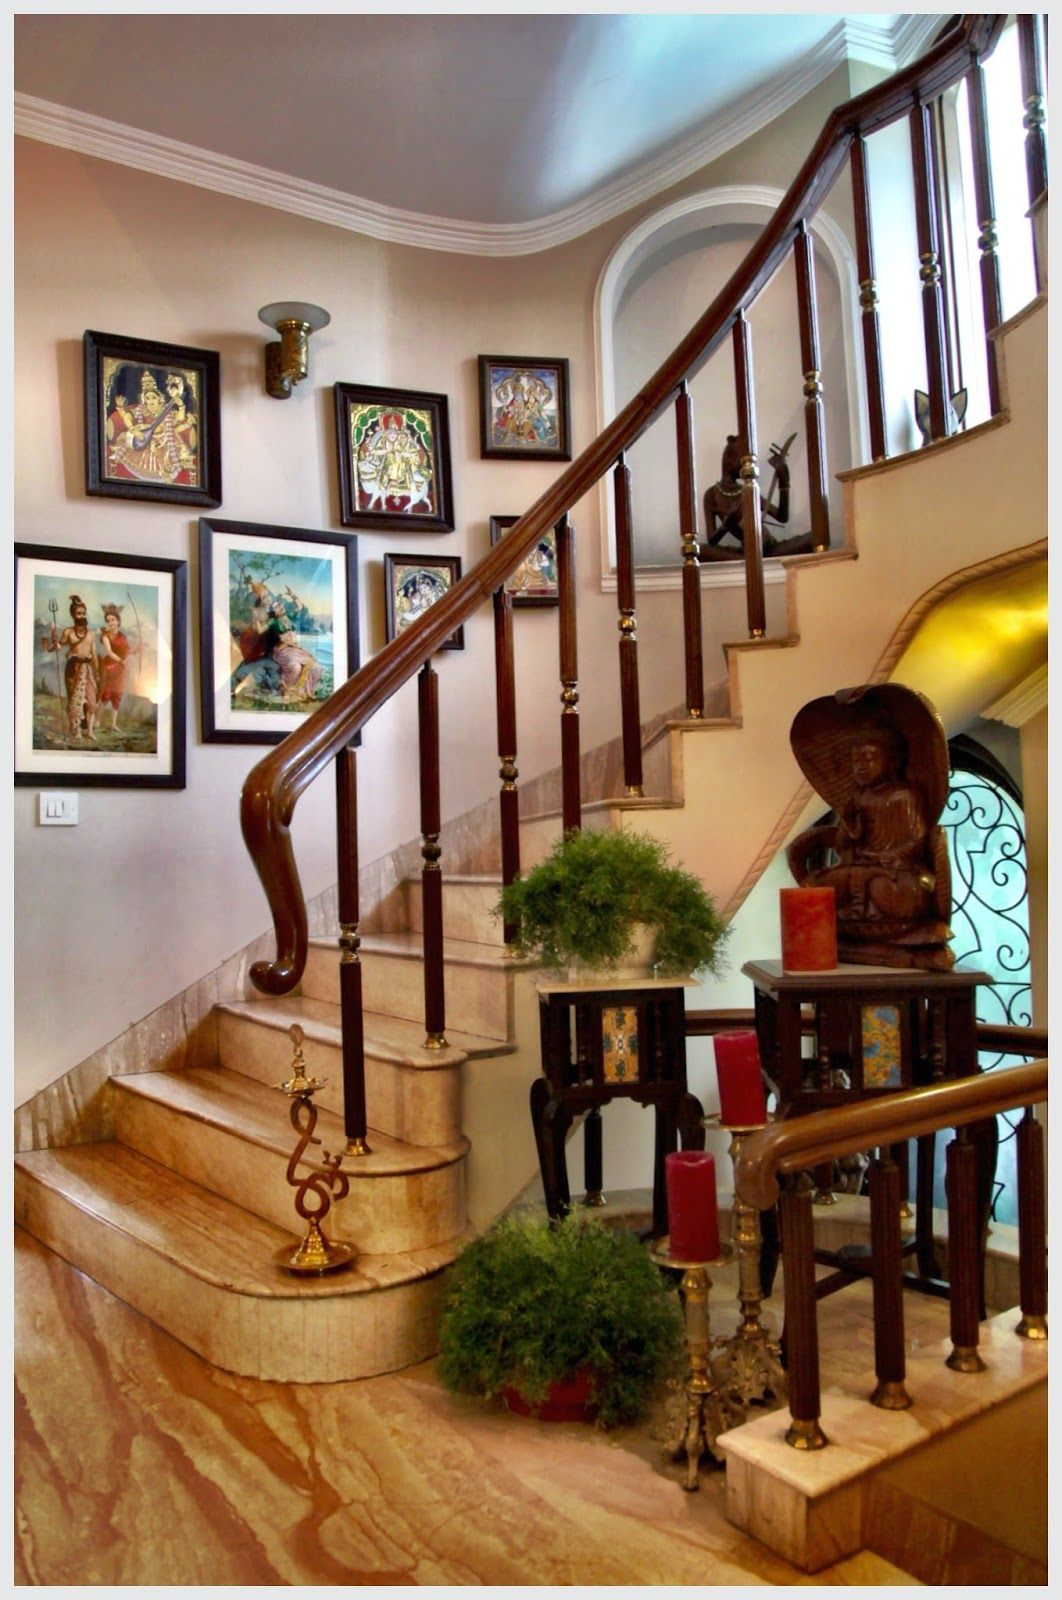 Lining the walls of the stairway are Ravi Varma Lithographs and